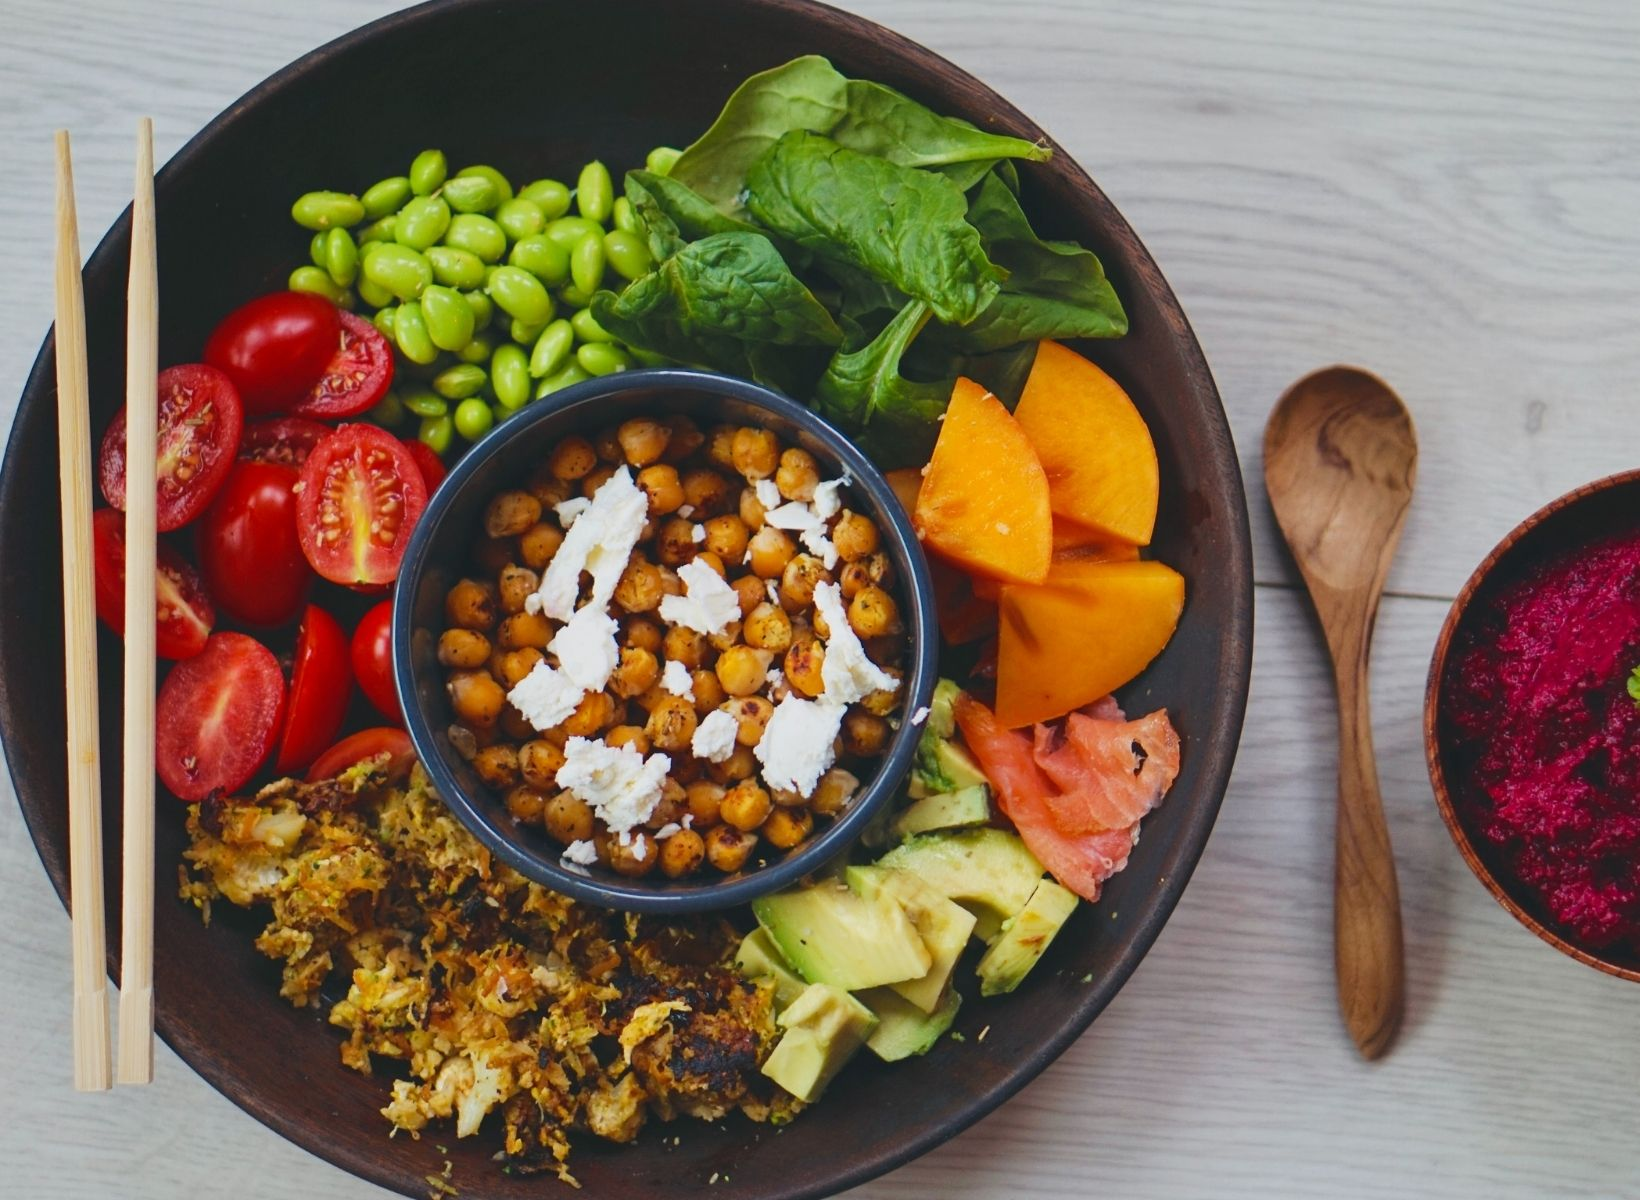 Overhead shot of a buddha bowl filled with vegetables and chickpeas